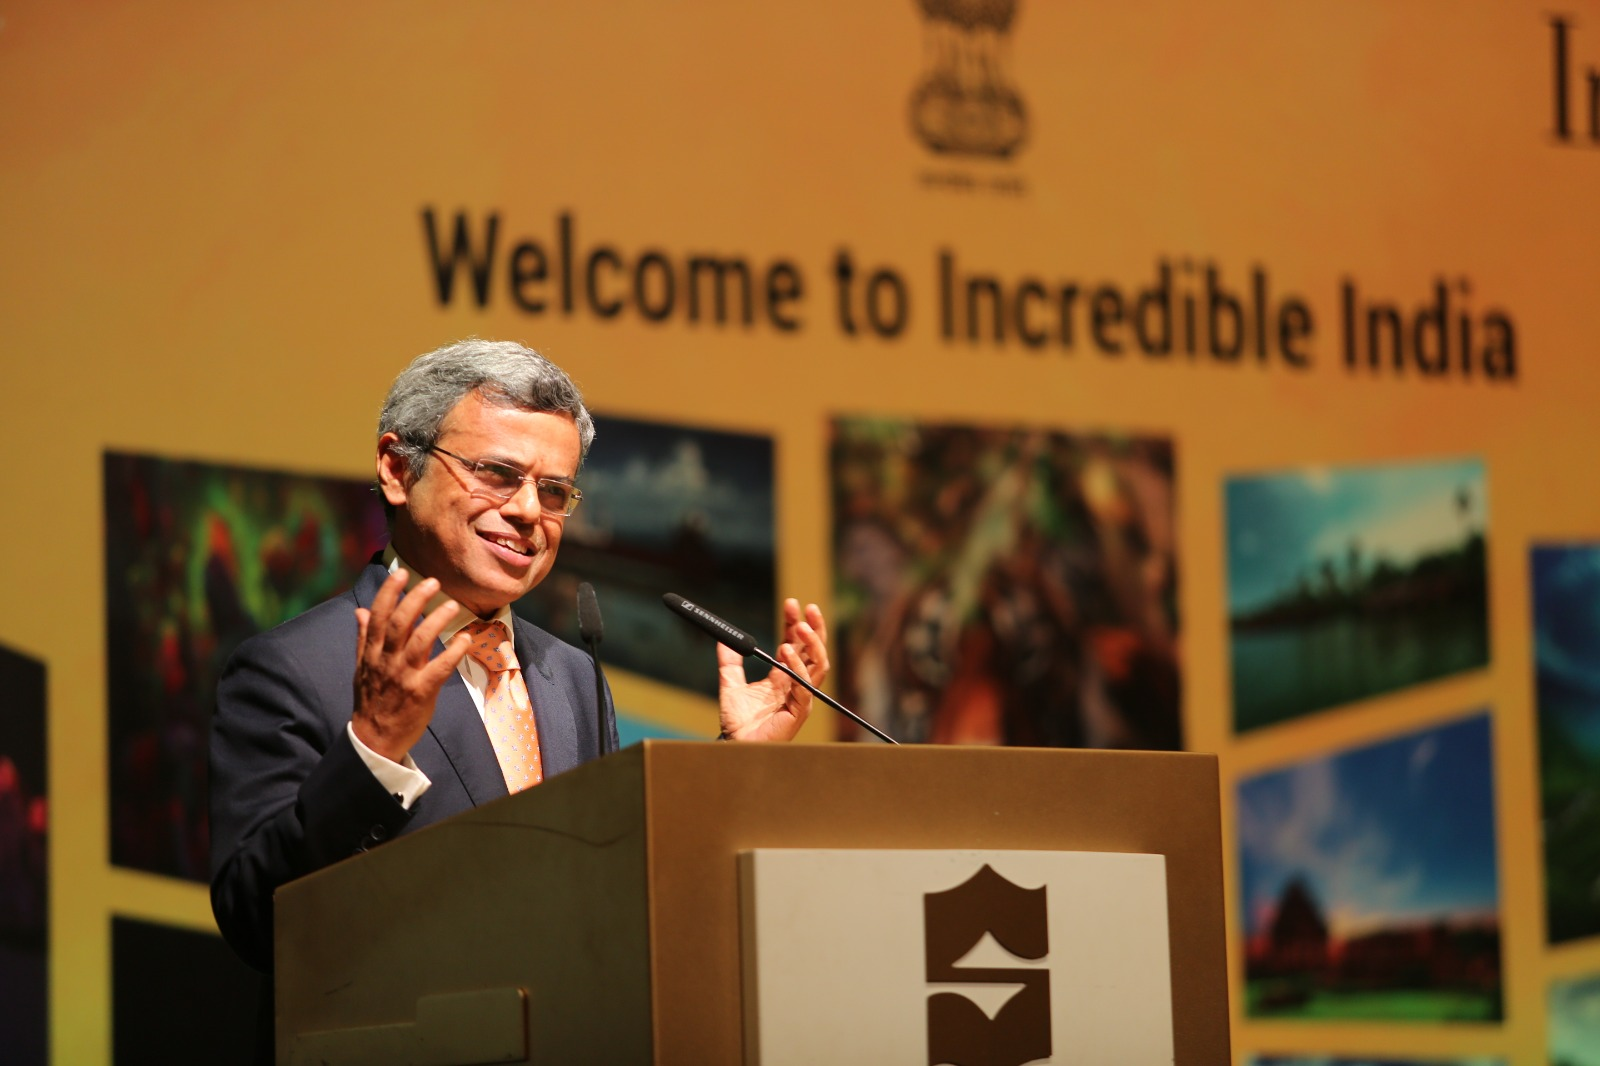 H E Jawed Ashraff, High Commissioner of India to Singapore addressing the audience at the Incredible India Road Show and Business Meet in Singapore. Photo Courtesy: Indian High Commission Singapore